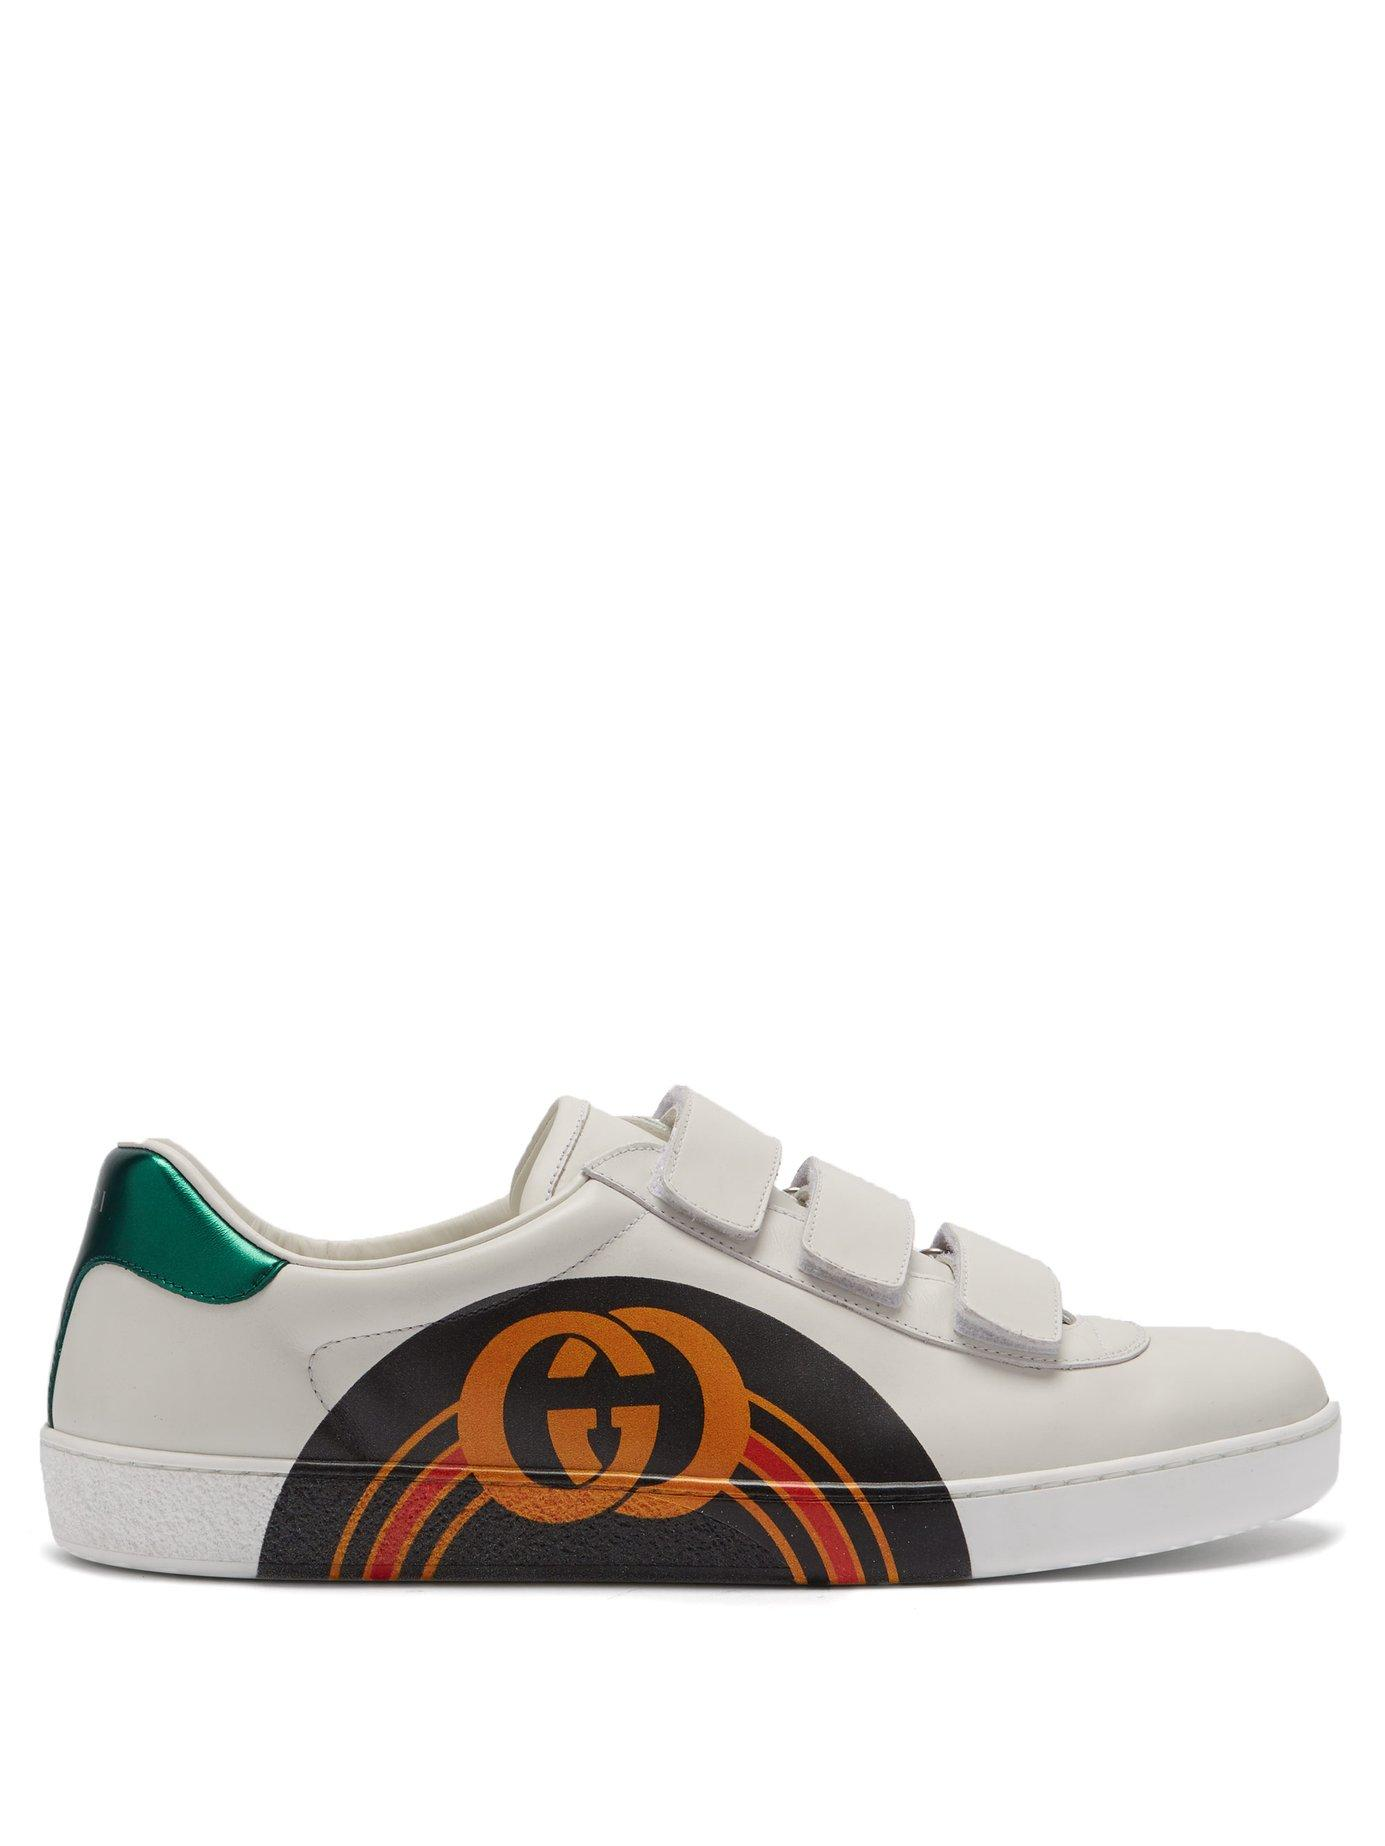 f48b42e8bdf Lyst - Gucci New Ace Gg Print Leather Trainers for Men